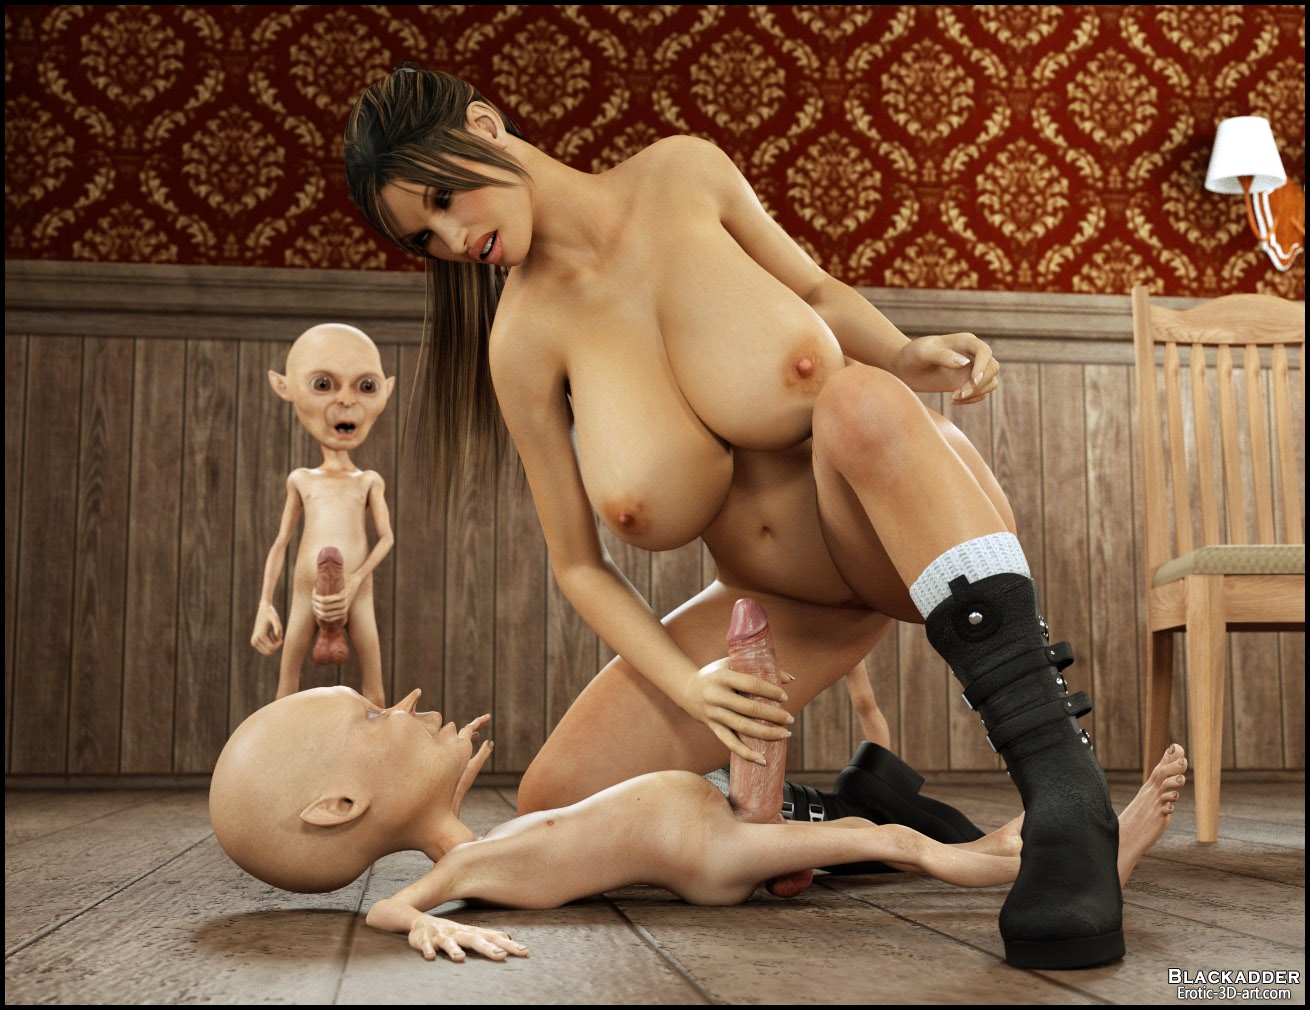 Lara croft and goblin 3d porn pic erotic vids